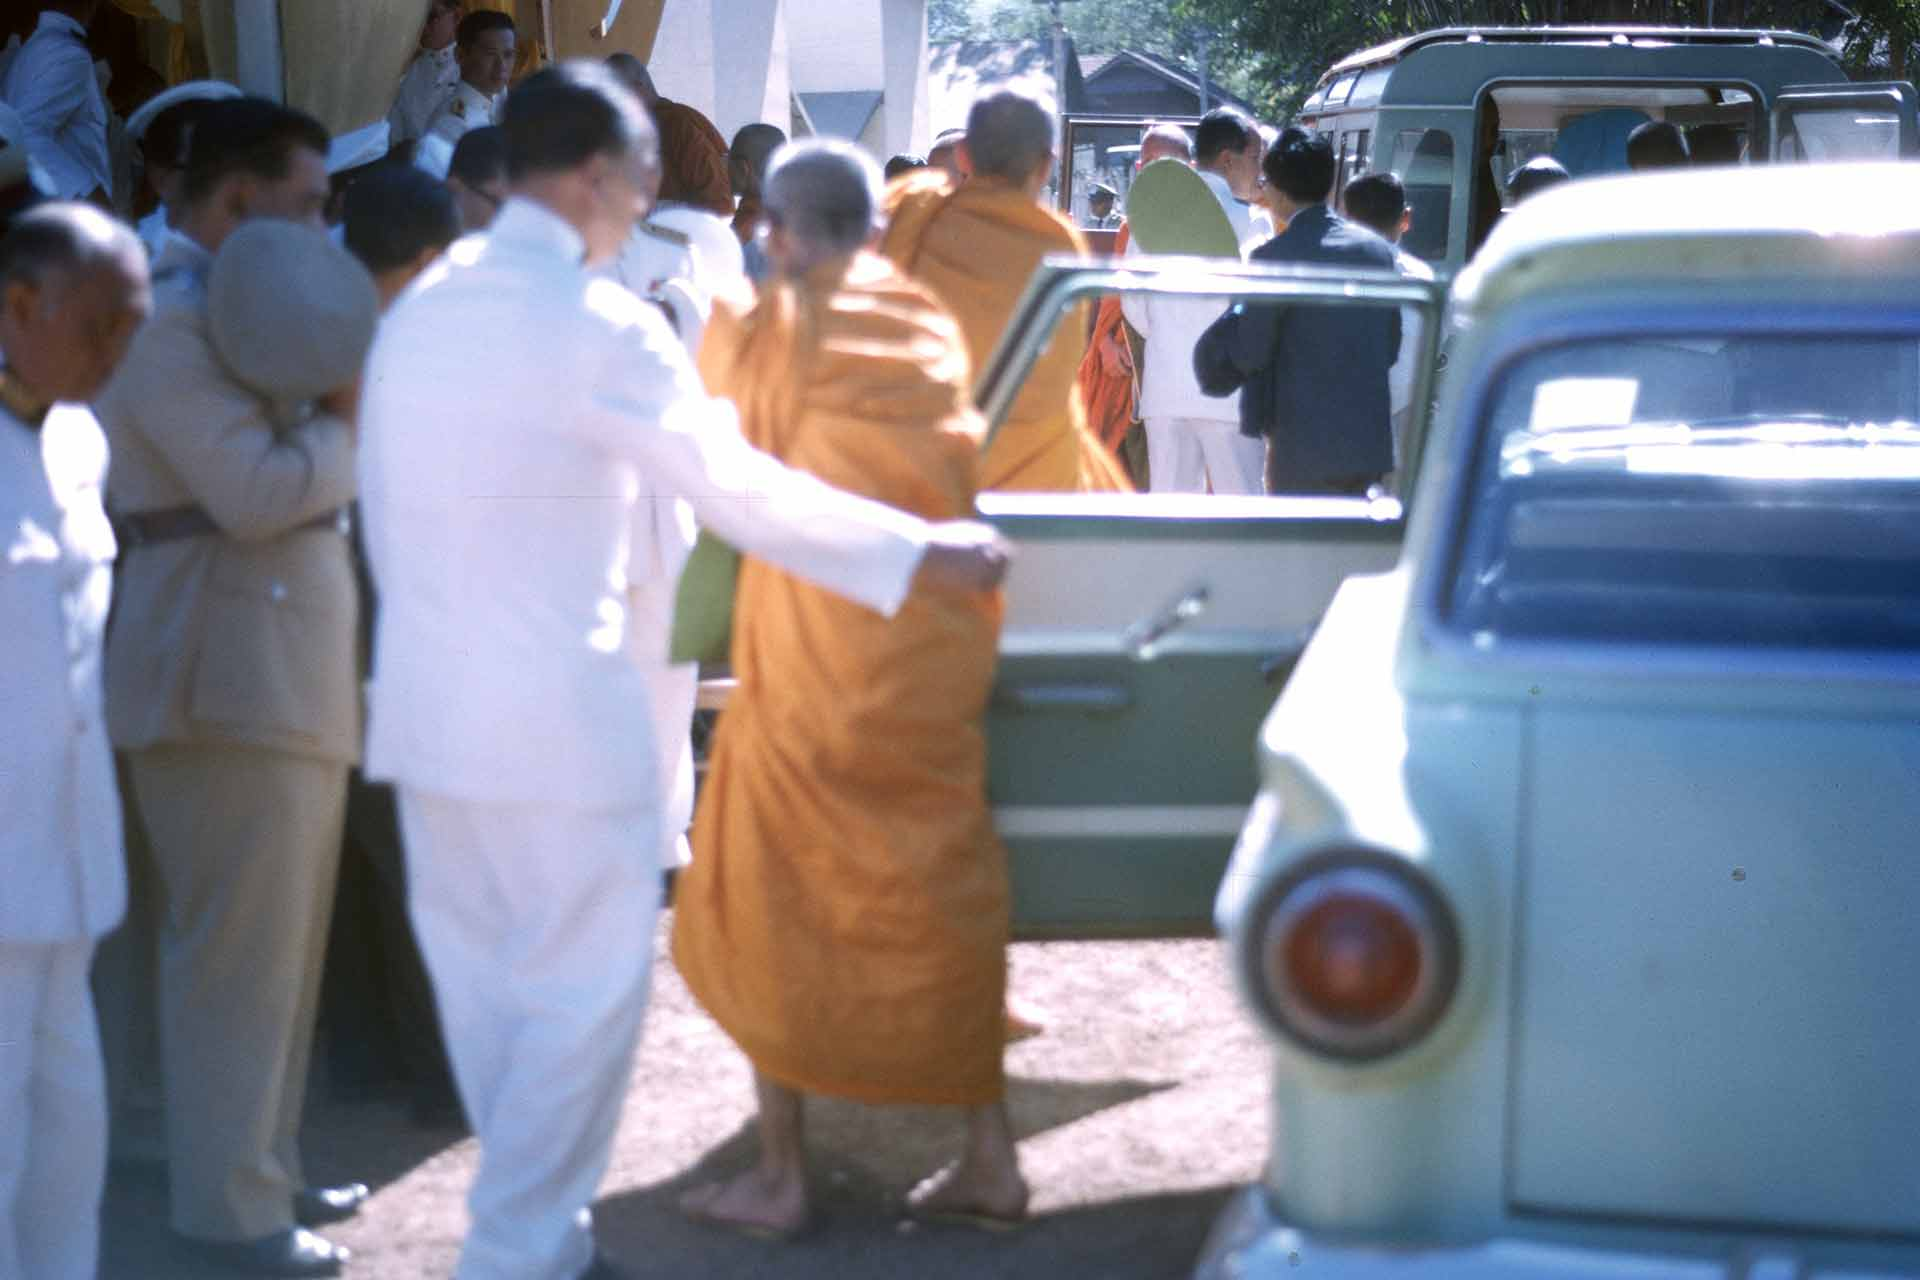 A man and a white suit and a older man in sandals and orange robe emerge from a car